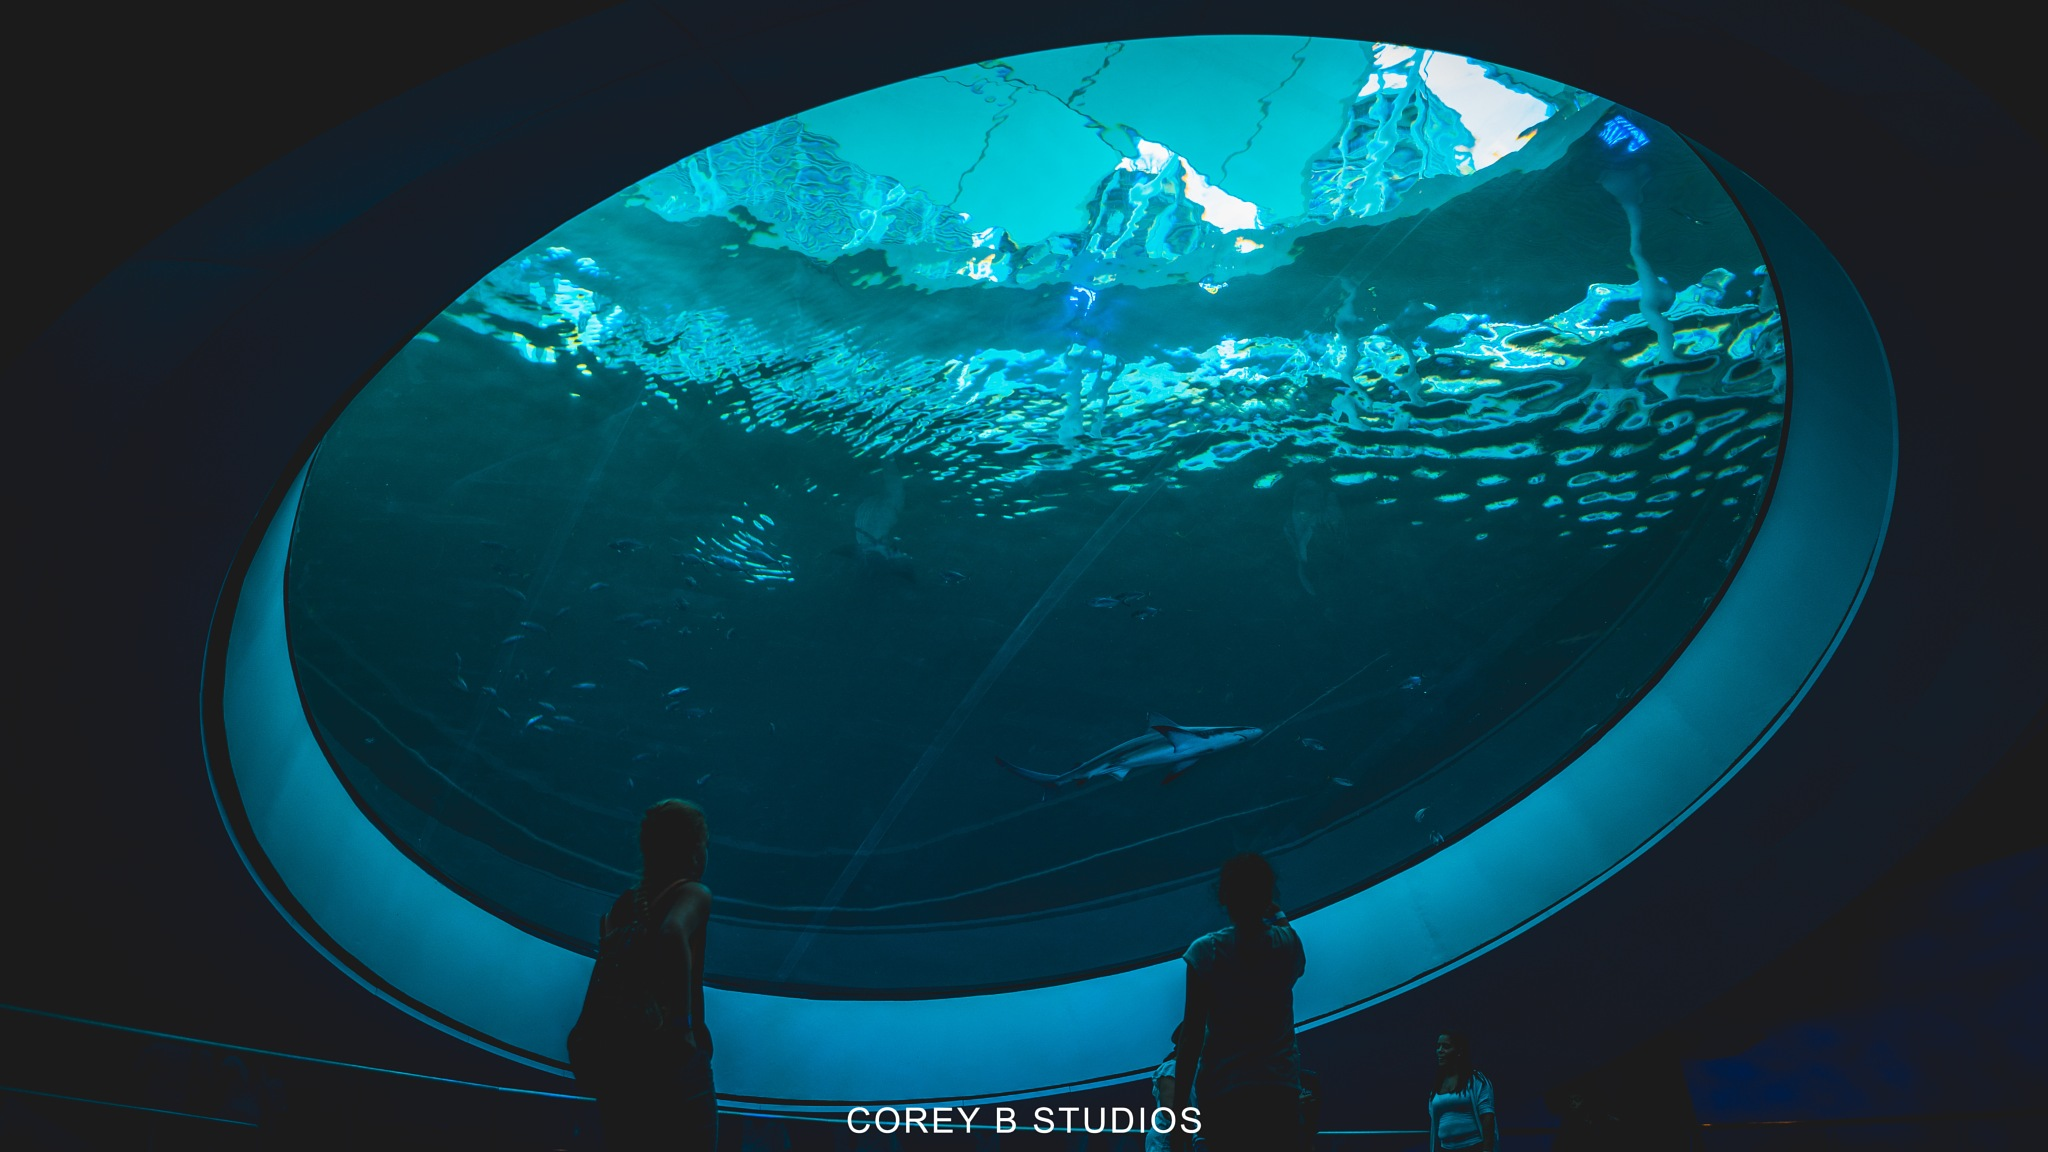 Under the Sea by Corey B Studios